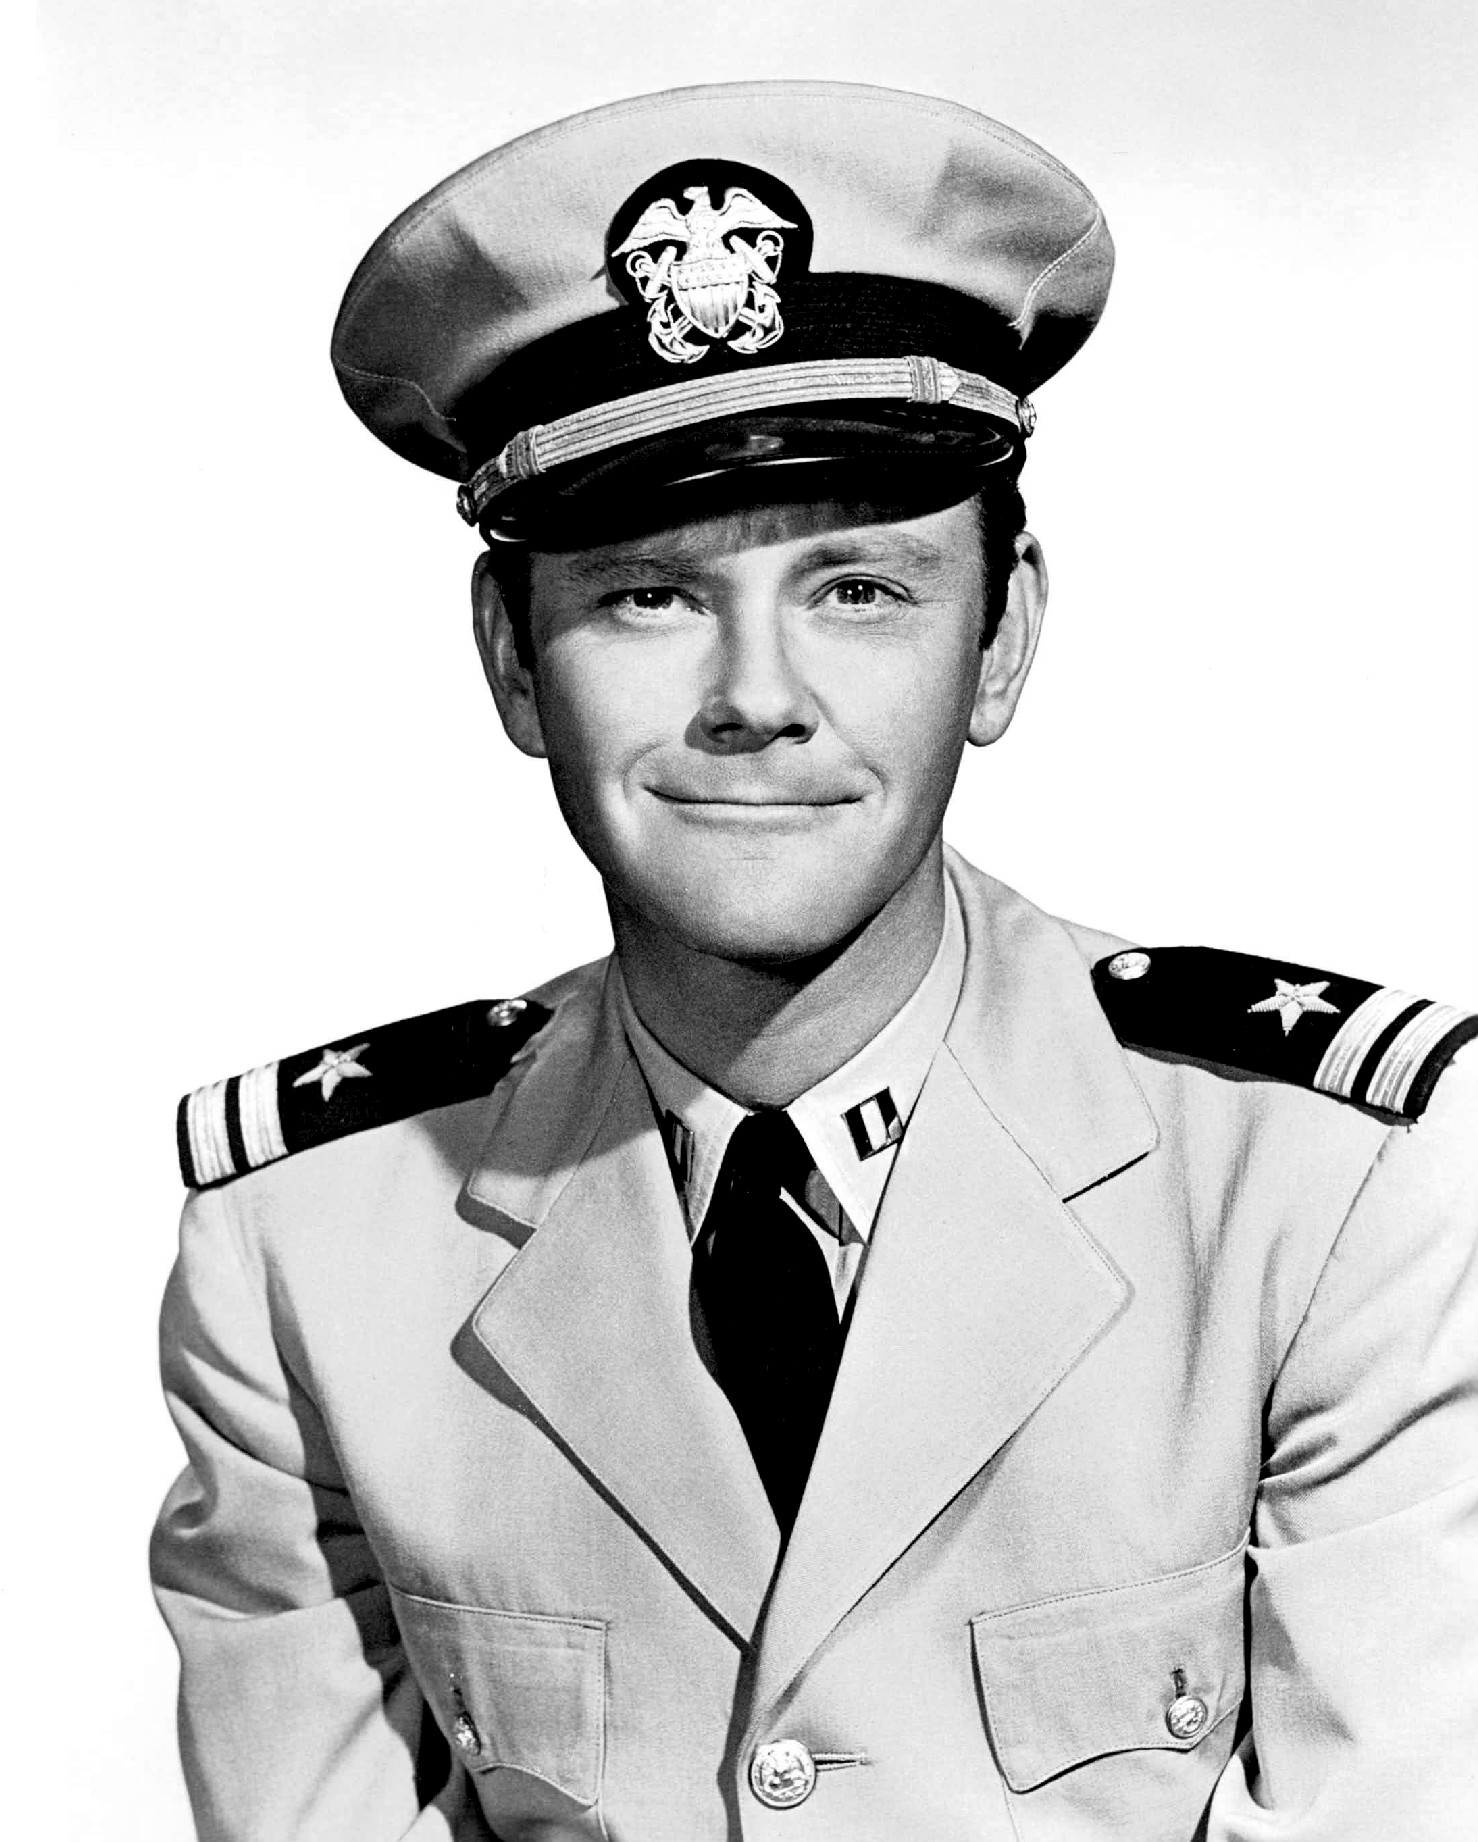 Young Dick Sargent in military uniform